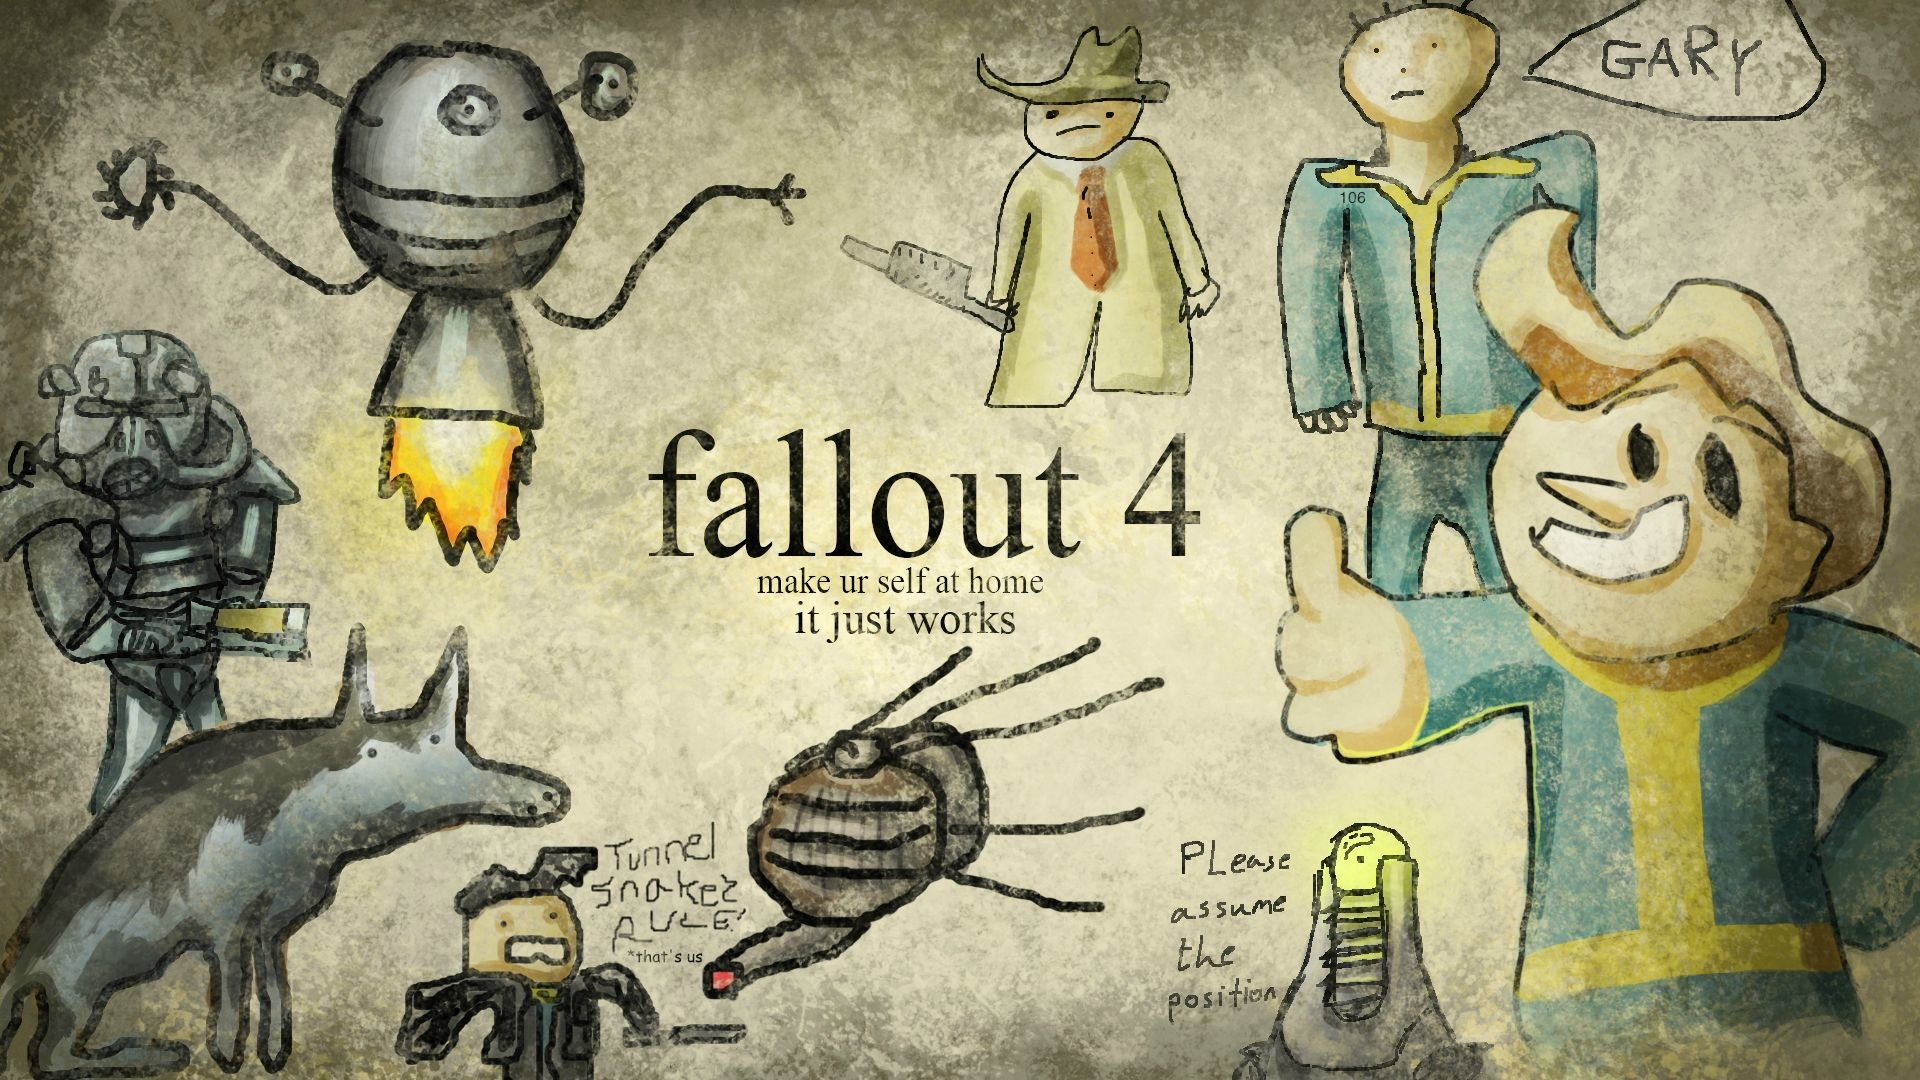 Fallout 4 Image For Desktop Wallpaper 1920 x 1080 px 623.08 KB  pipboy please standby